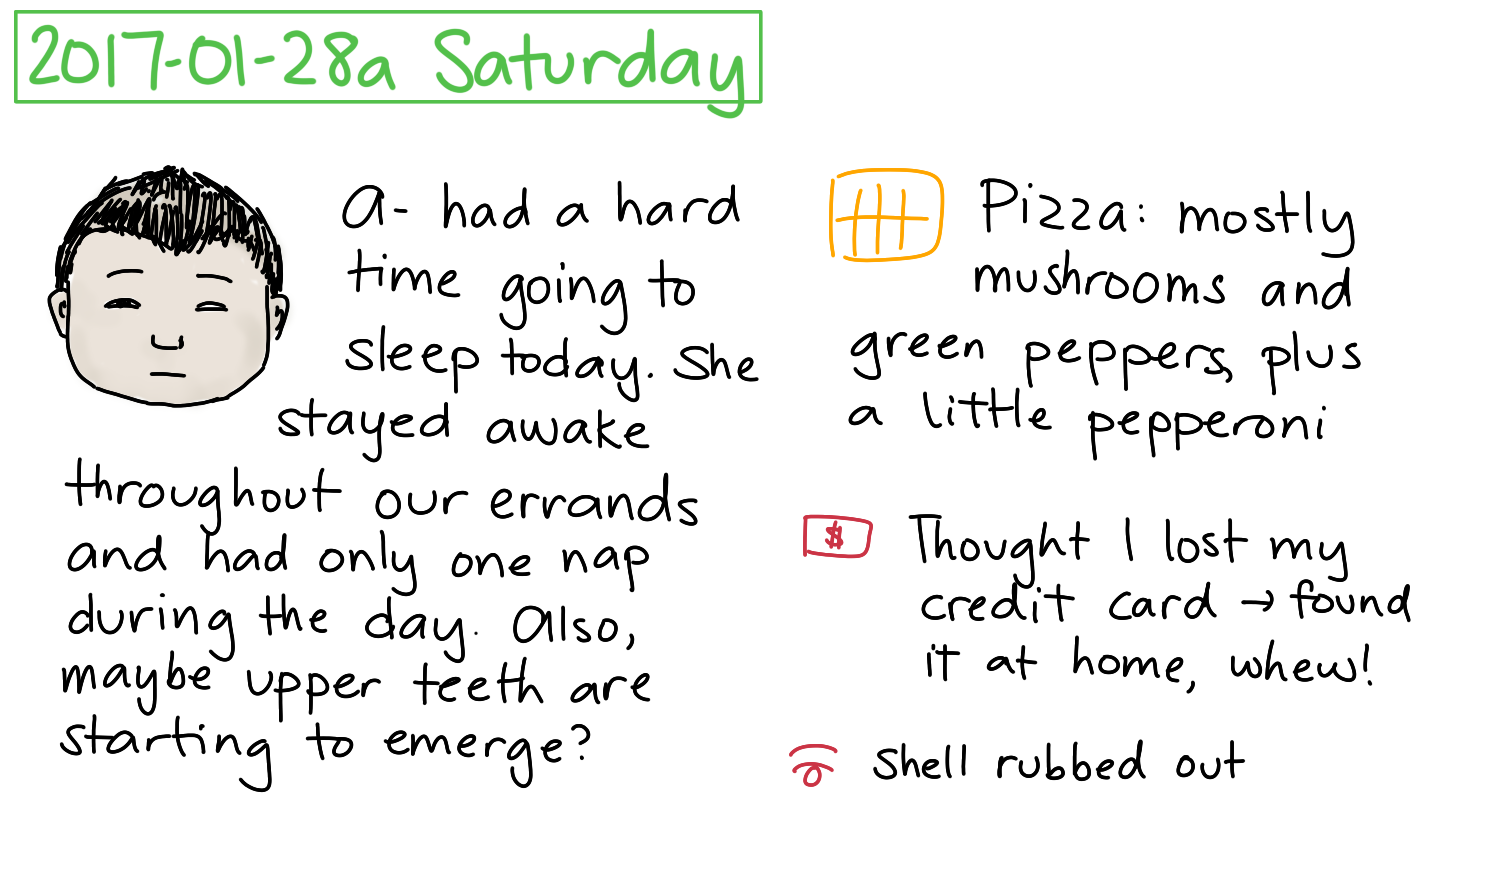 2017-01-28a Saturday #daily #journal.png